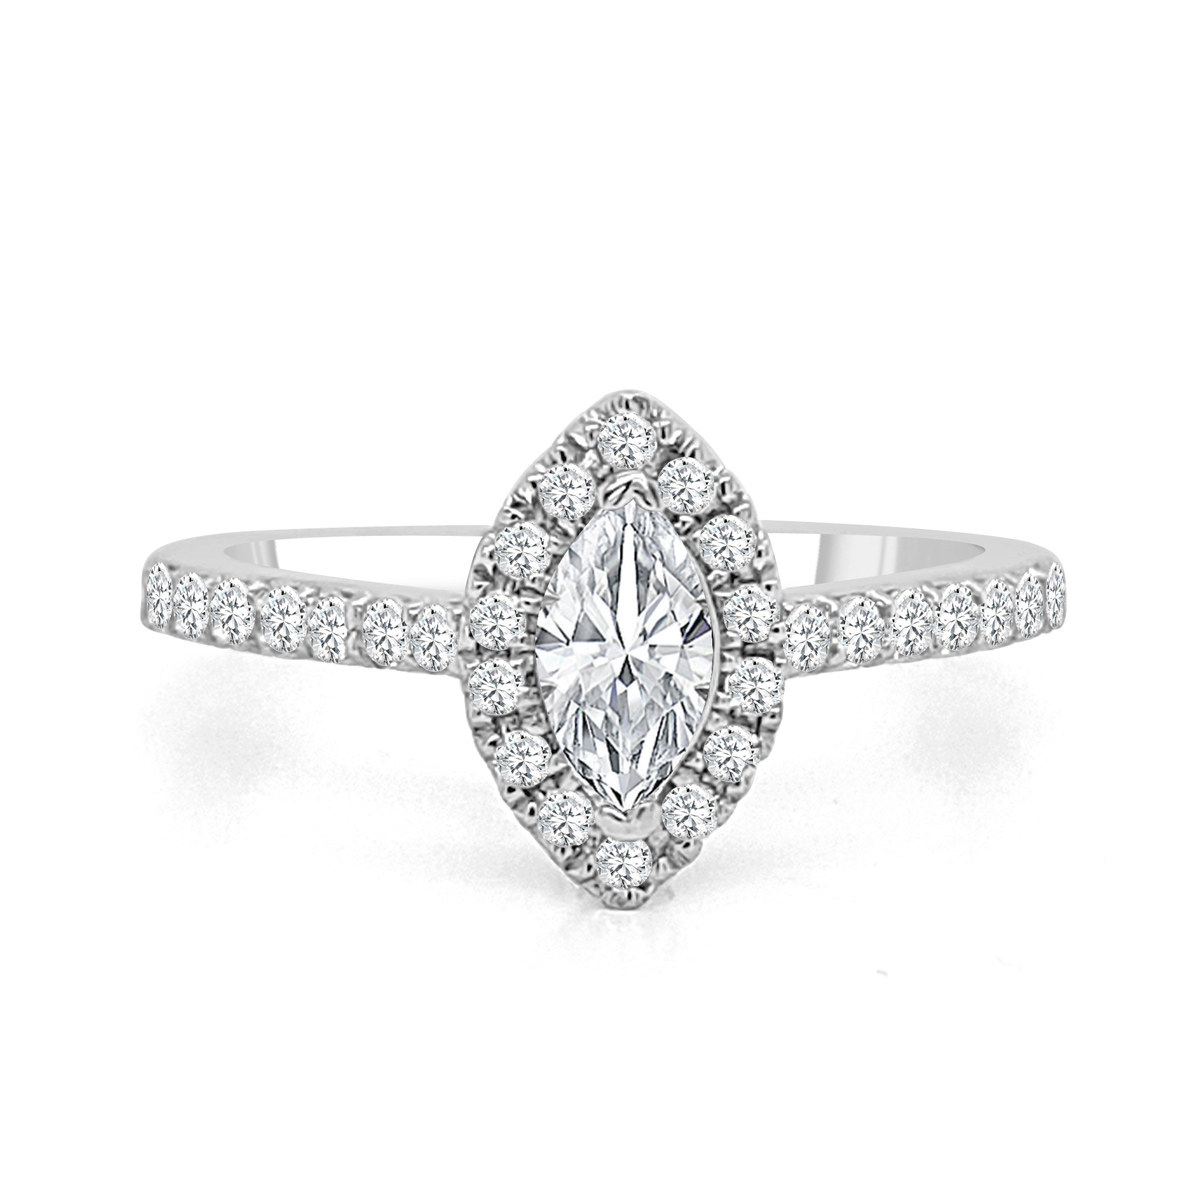 Paramount Gems 14 Karat White Gold Marquise Diamond Bridal Ring